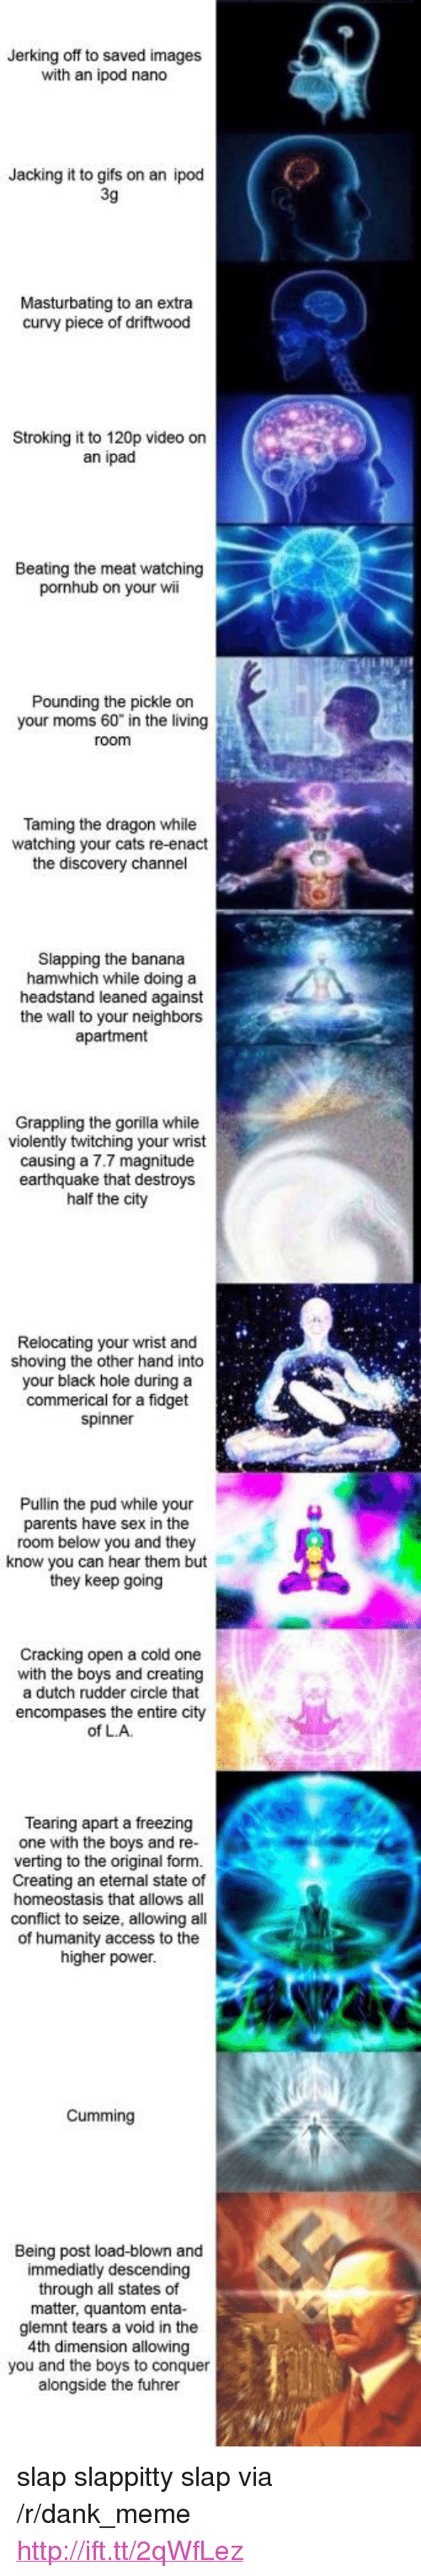 """discovery channel: Jerking off to saved images  with an ipod nano  Jacking it to gifs on an ipod  3g  Masturbating to an extra  curvy piece of driftwood  f drifwood  Stroking it to 120p video on  an ipad  Beating the meat watching  pornhub on your wi  Pounding the pickle orn  your moms 60"""" in the living  Taming the dragon while  watching your cats re-enact  the discovery channel  Slapping the banana  hamwhich while doing a  headstand leaned against  the wall to your neighbors  apartment  Grappling the gorilla while  violently twitching your wrist  causing a 7.7 magnitude  earthquake that destroys  half the city  Relocating your wrist and  shoving the other hand into  your black hole during a  commerical for a fidget  spinner  Pullin the pud while your  parents have sex in the  room below you and they  know you can hear them but  they keep going  Cracking open a cold one  with the boys and creating  a dutch rudder circle that  encompases the entire city  of LA  Tearing apart a freezing  one with the boys and re-  verting to the original form.  Creating an eternal state of  homeostasis that allows all  conflict to seize, allowing all  of humanity access to the  higher power  Cumming  Being post load-blown and  immediatly descending  through all states of  matter, quantom enta-  glemnt tears a void in the  4th dimension allowing  you and the boys to conquer  alongside the fuhrer <p>slap slappitty slap via /r/dank_meme <a href=""""http://ift.tt/2qWfLez"""">http://ift.tt/2qWfLez</a></p>"""